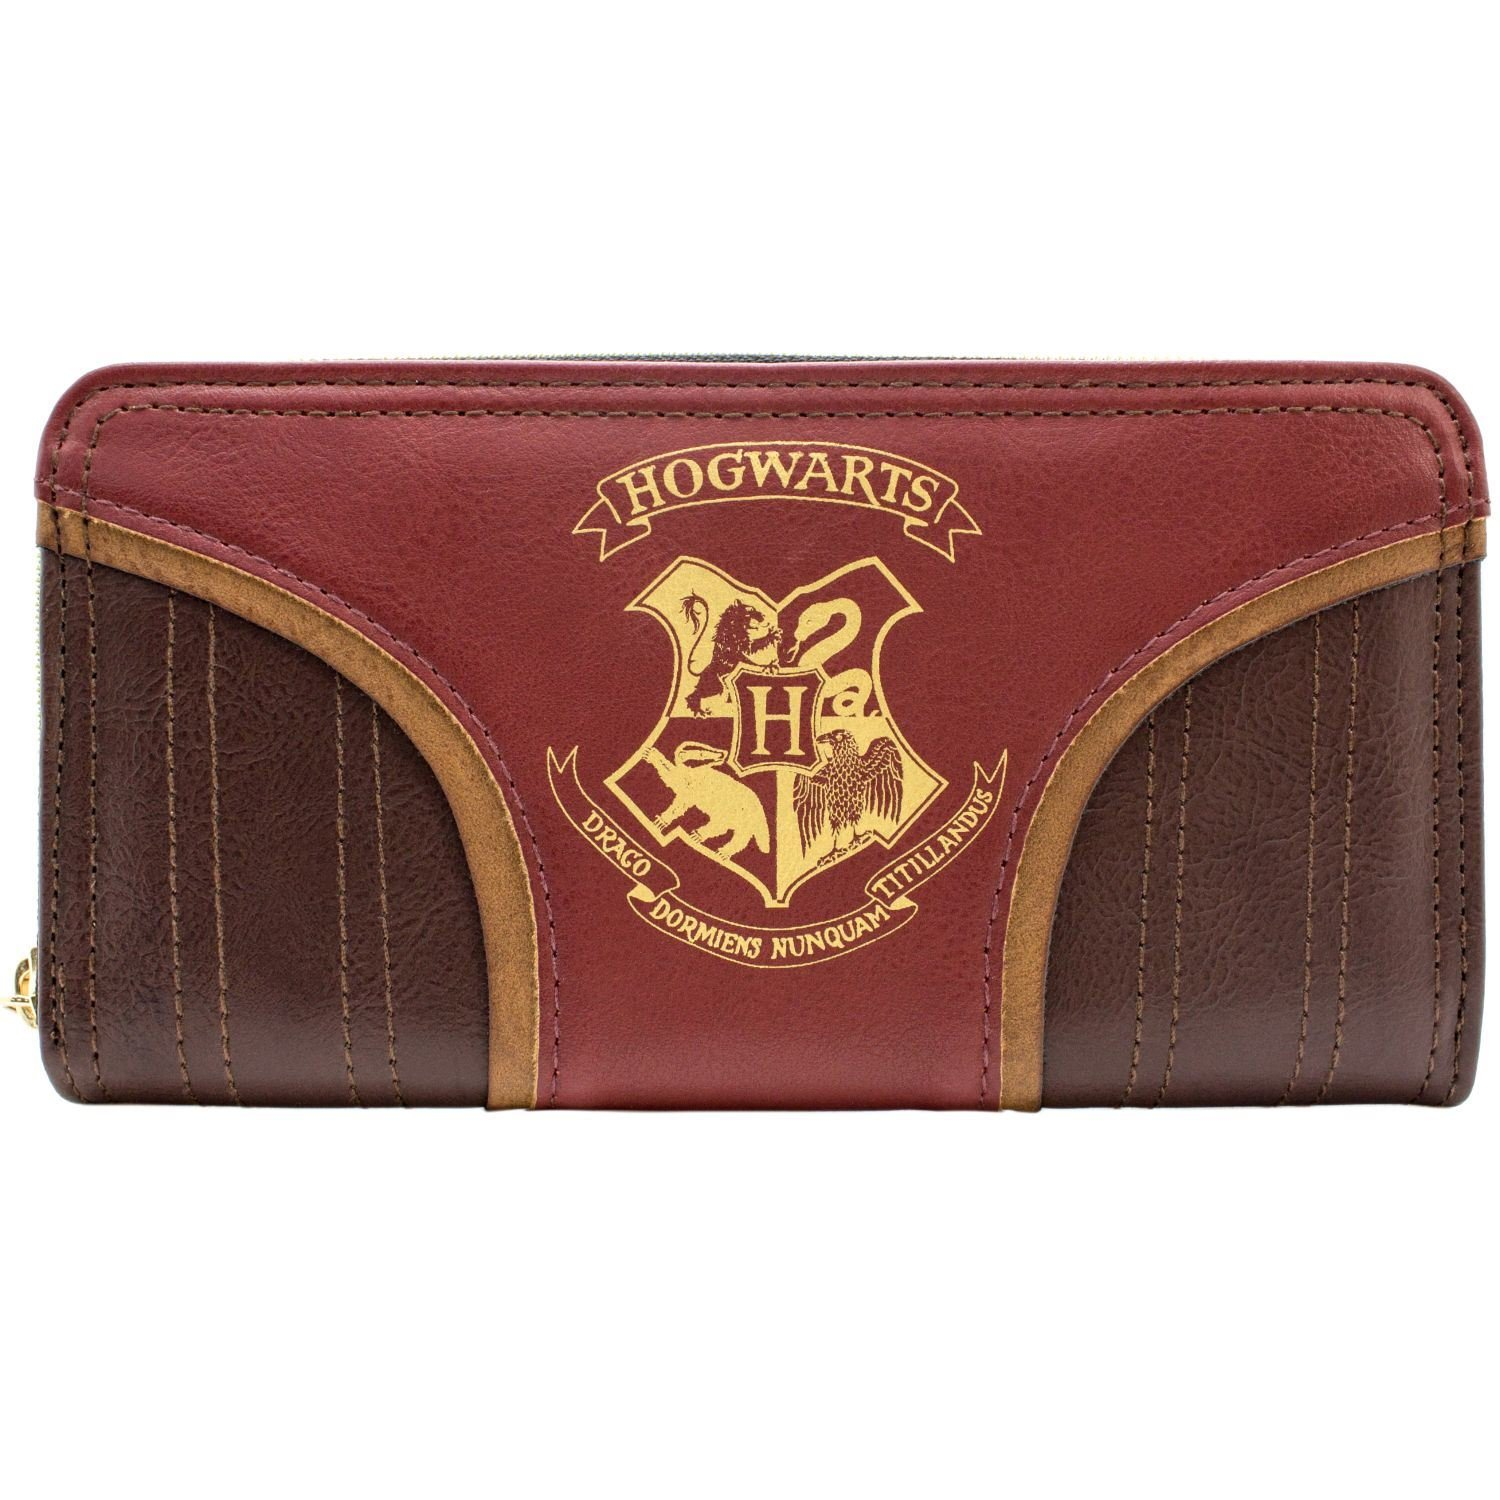 Cartera de Harry Potter Hogwarts equipo Quidditch Rojo: Amazon.es: Equipaje